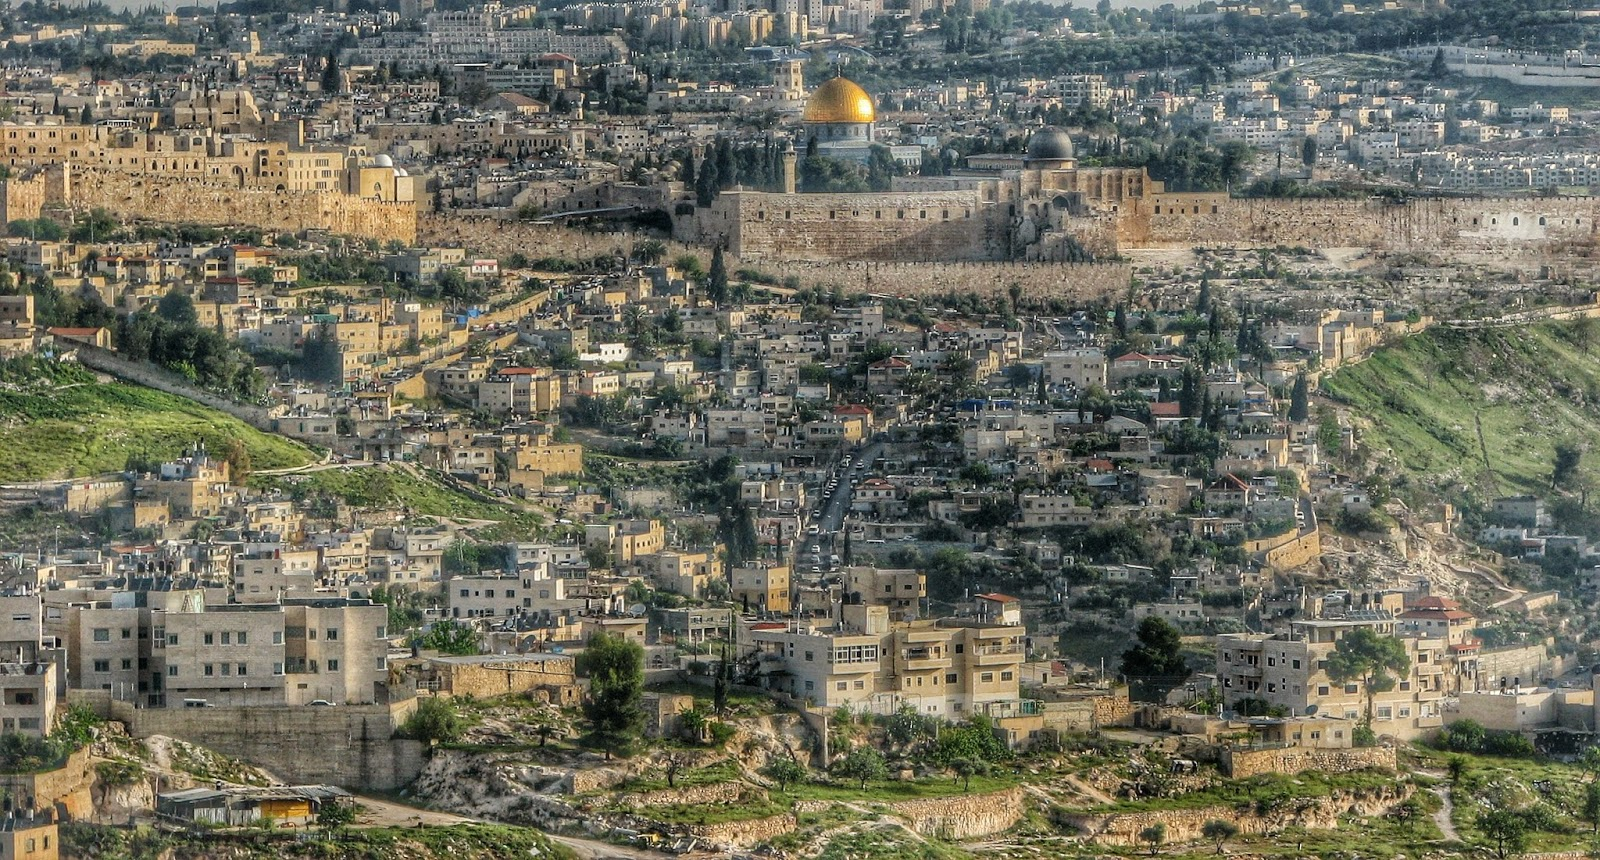 Jerusalem – Losing my religion